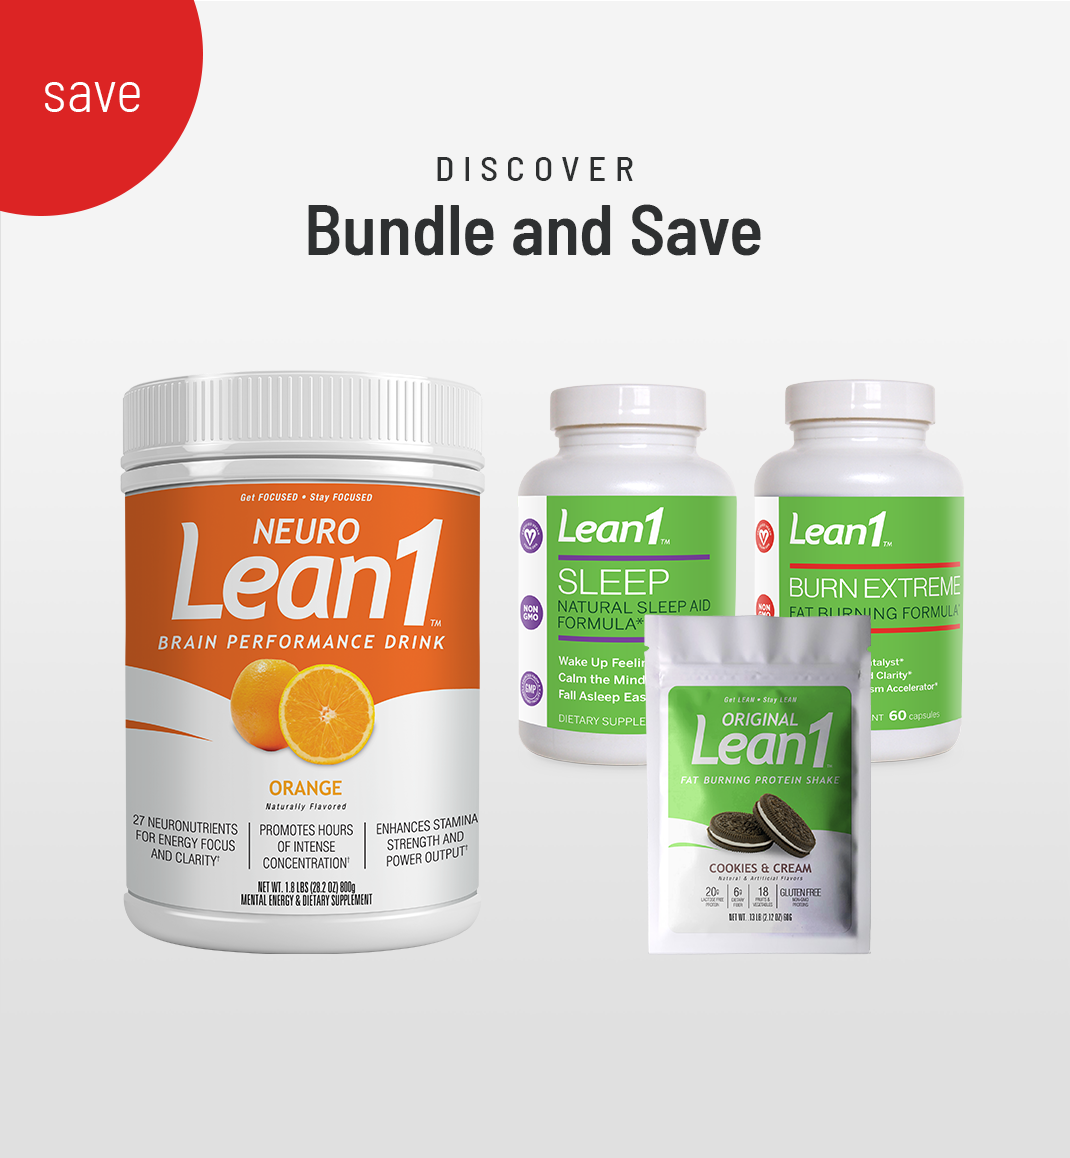 Save and Bundle